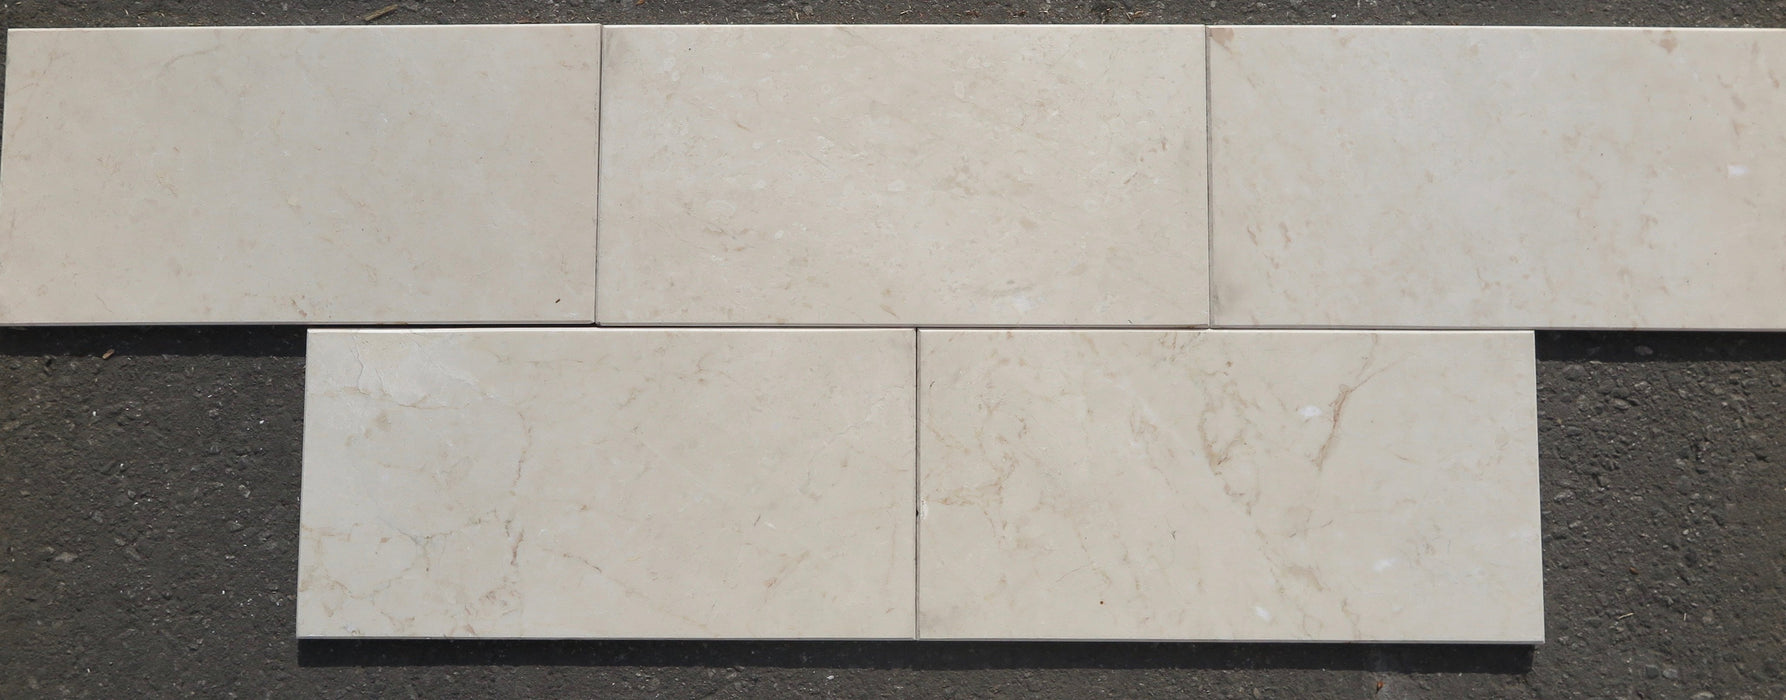 "Afyon Cream Marble Threshold - 26"" x 76"" x 1 1/14"" Polished"